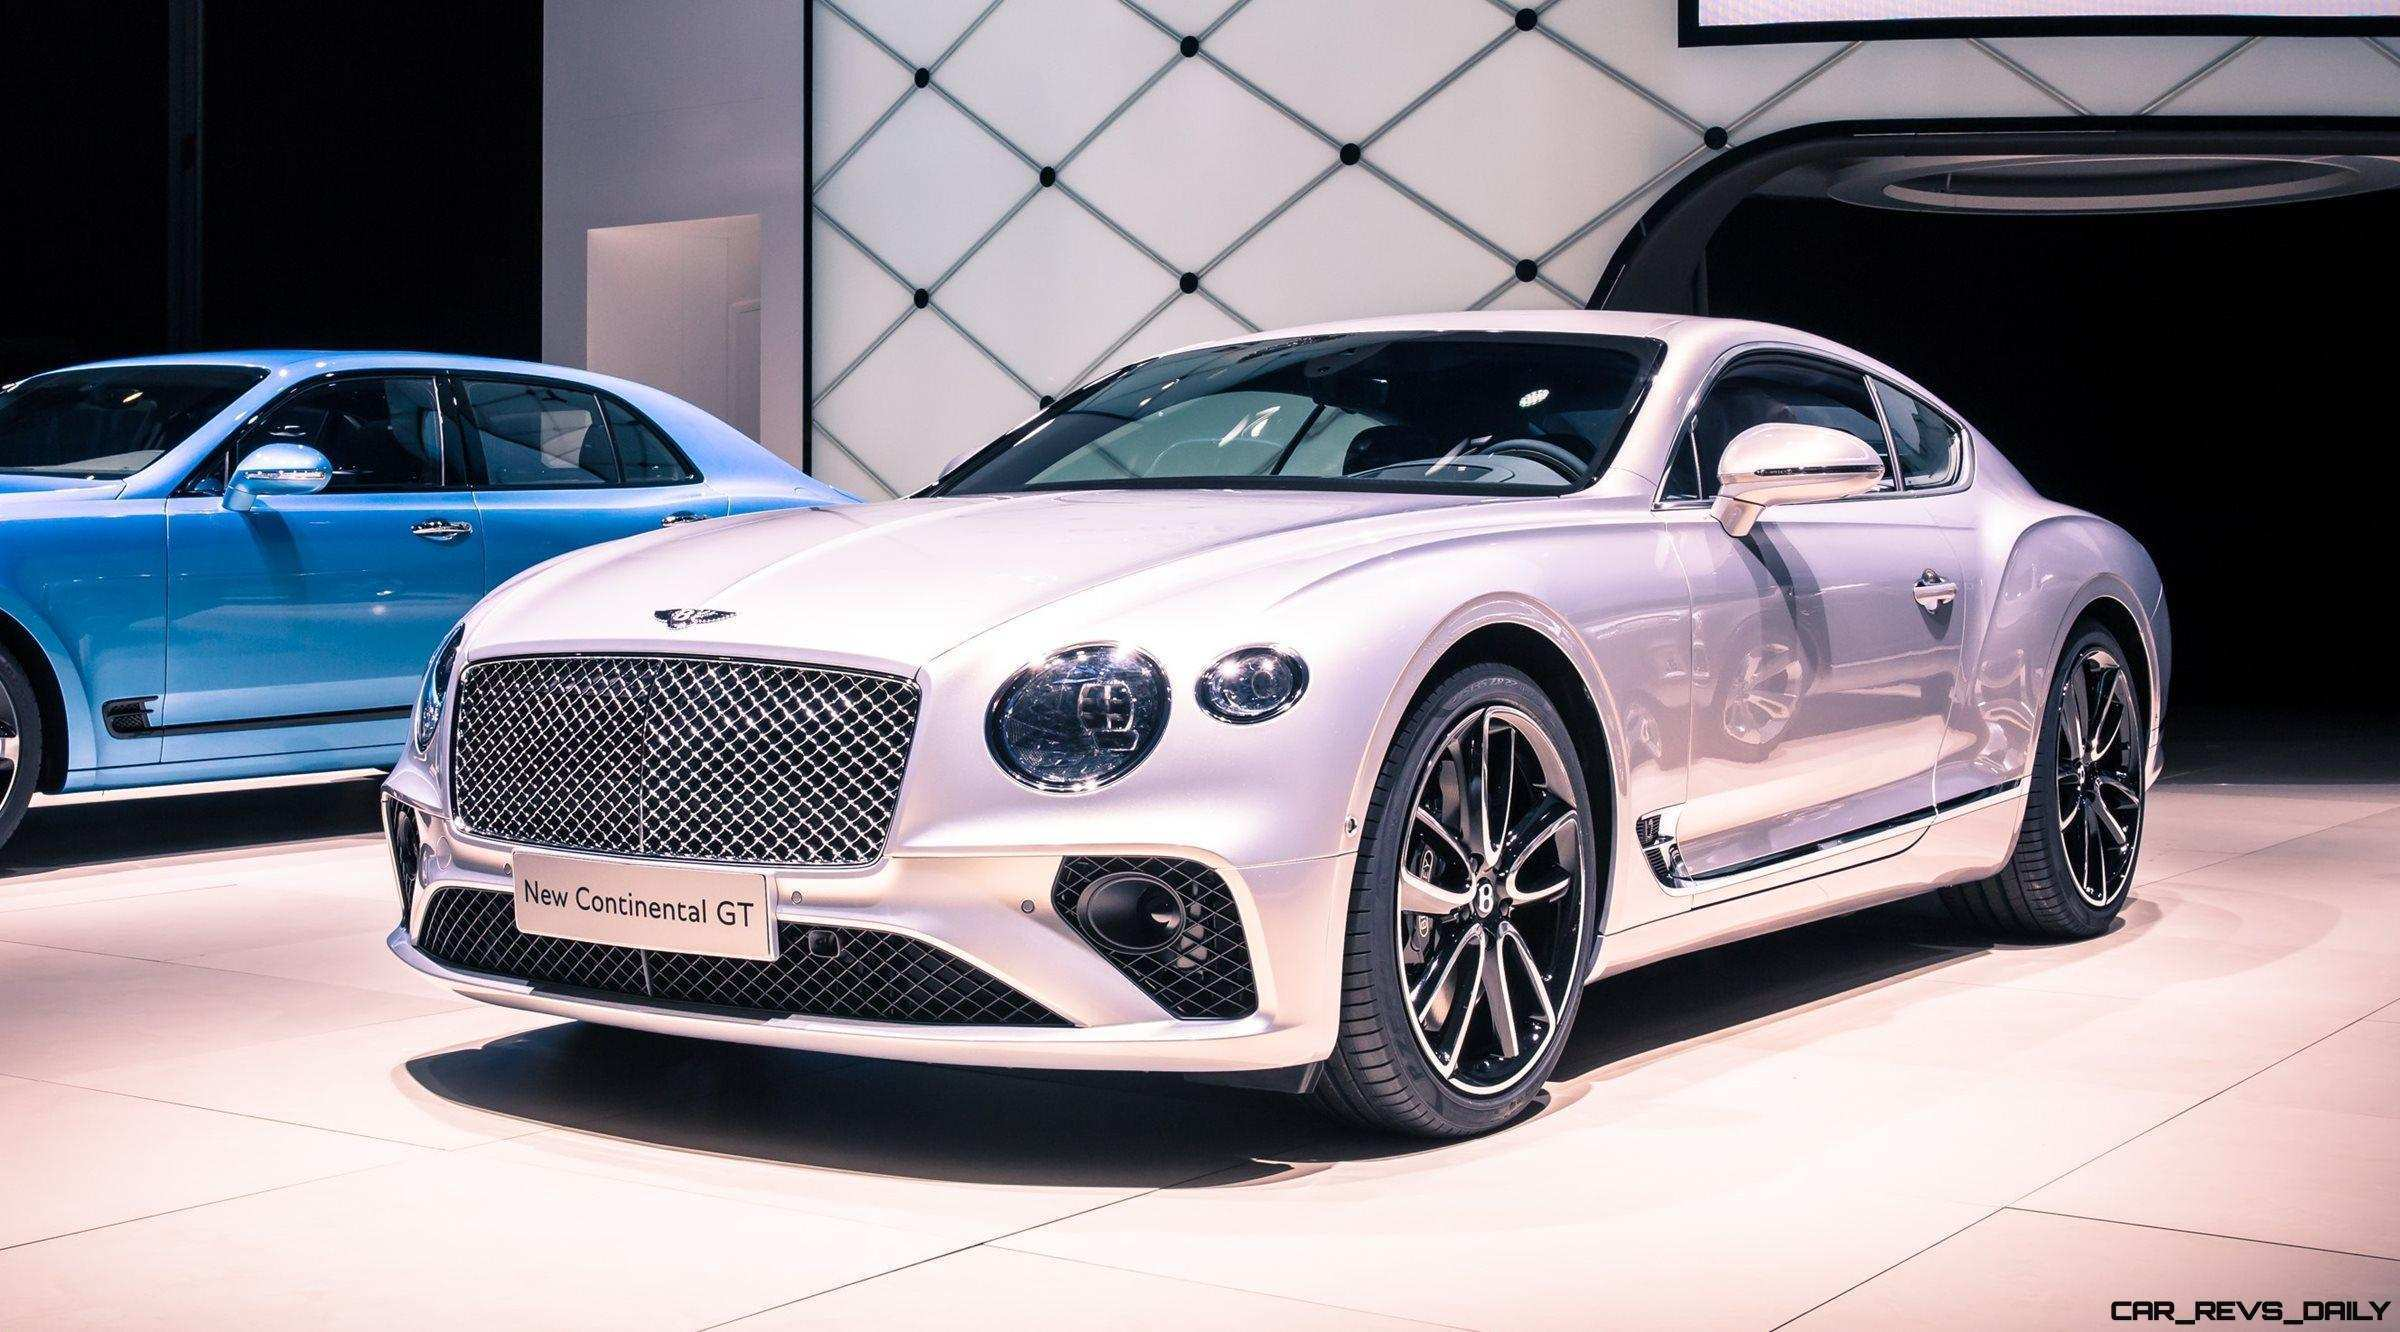 86 All New 2019 Bentley Continental Gt Release Date Rumors for 2019 Bentley Continental Gt Release Date